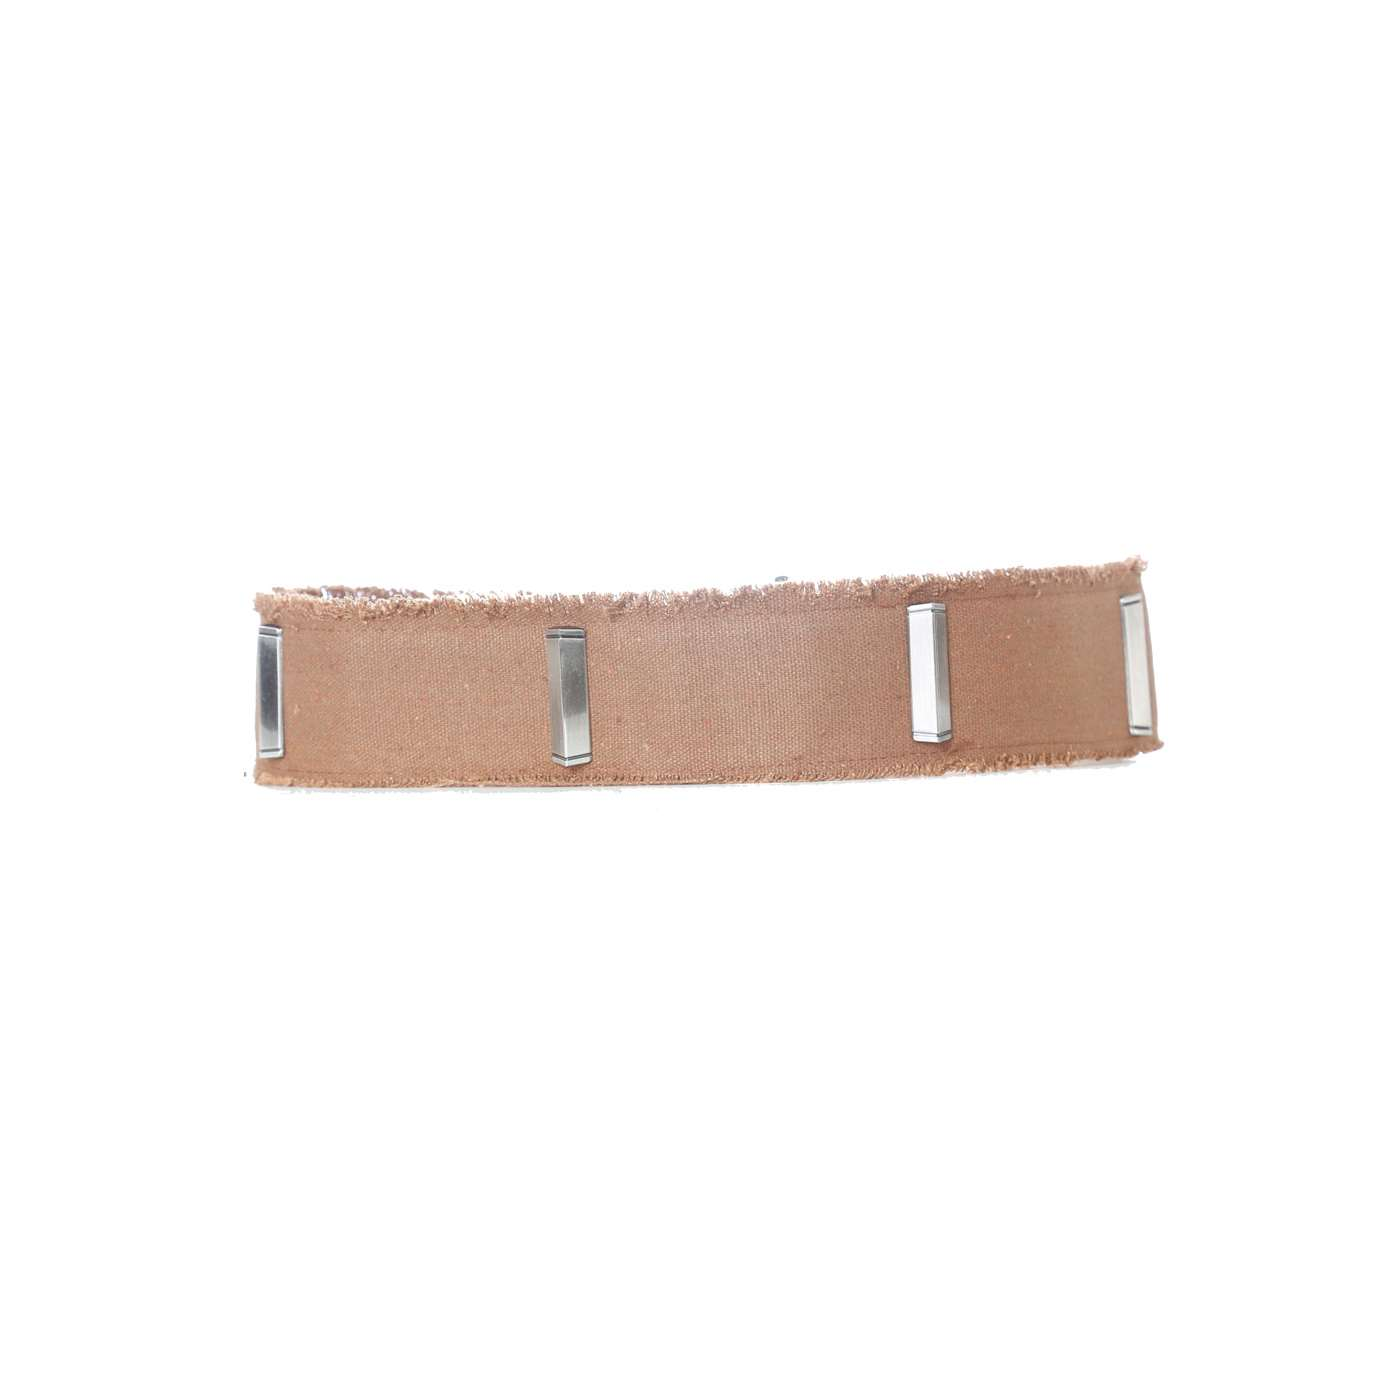 Ceinture camel effet jean à clous rectangle